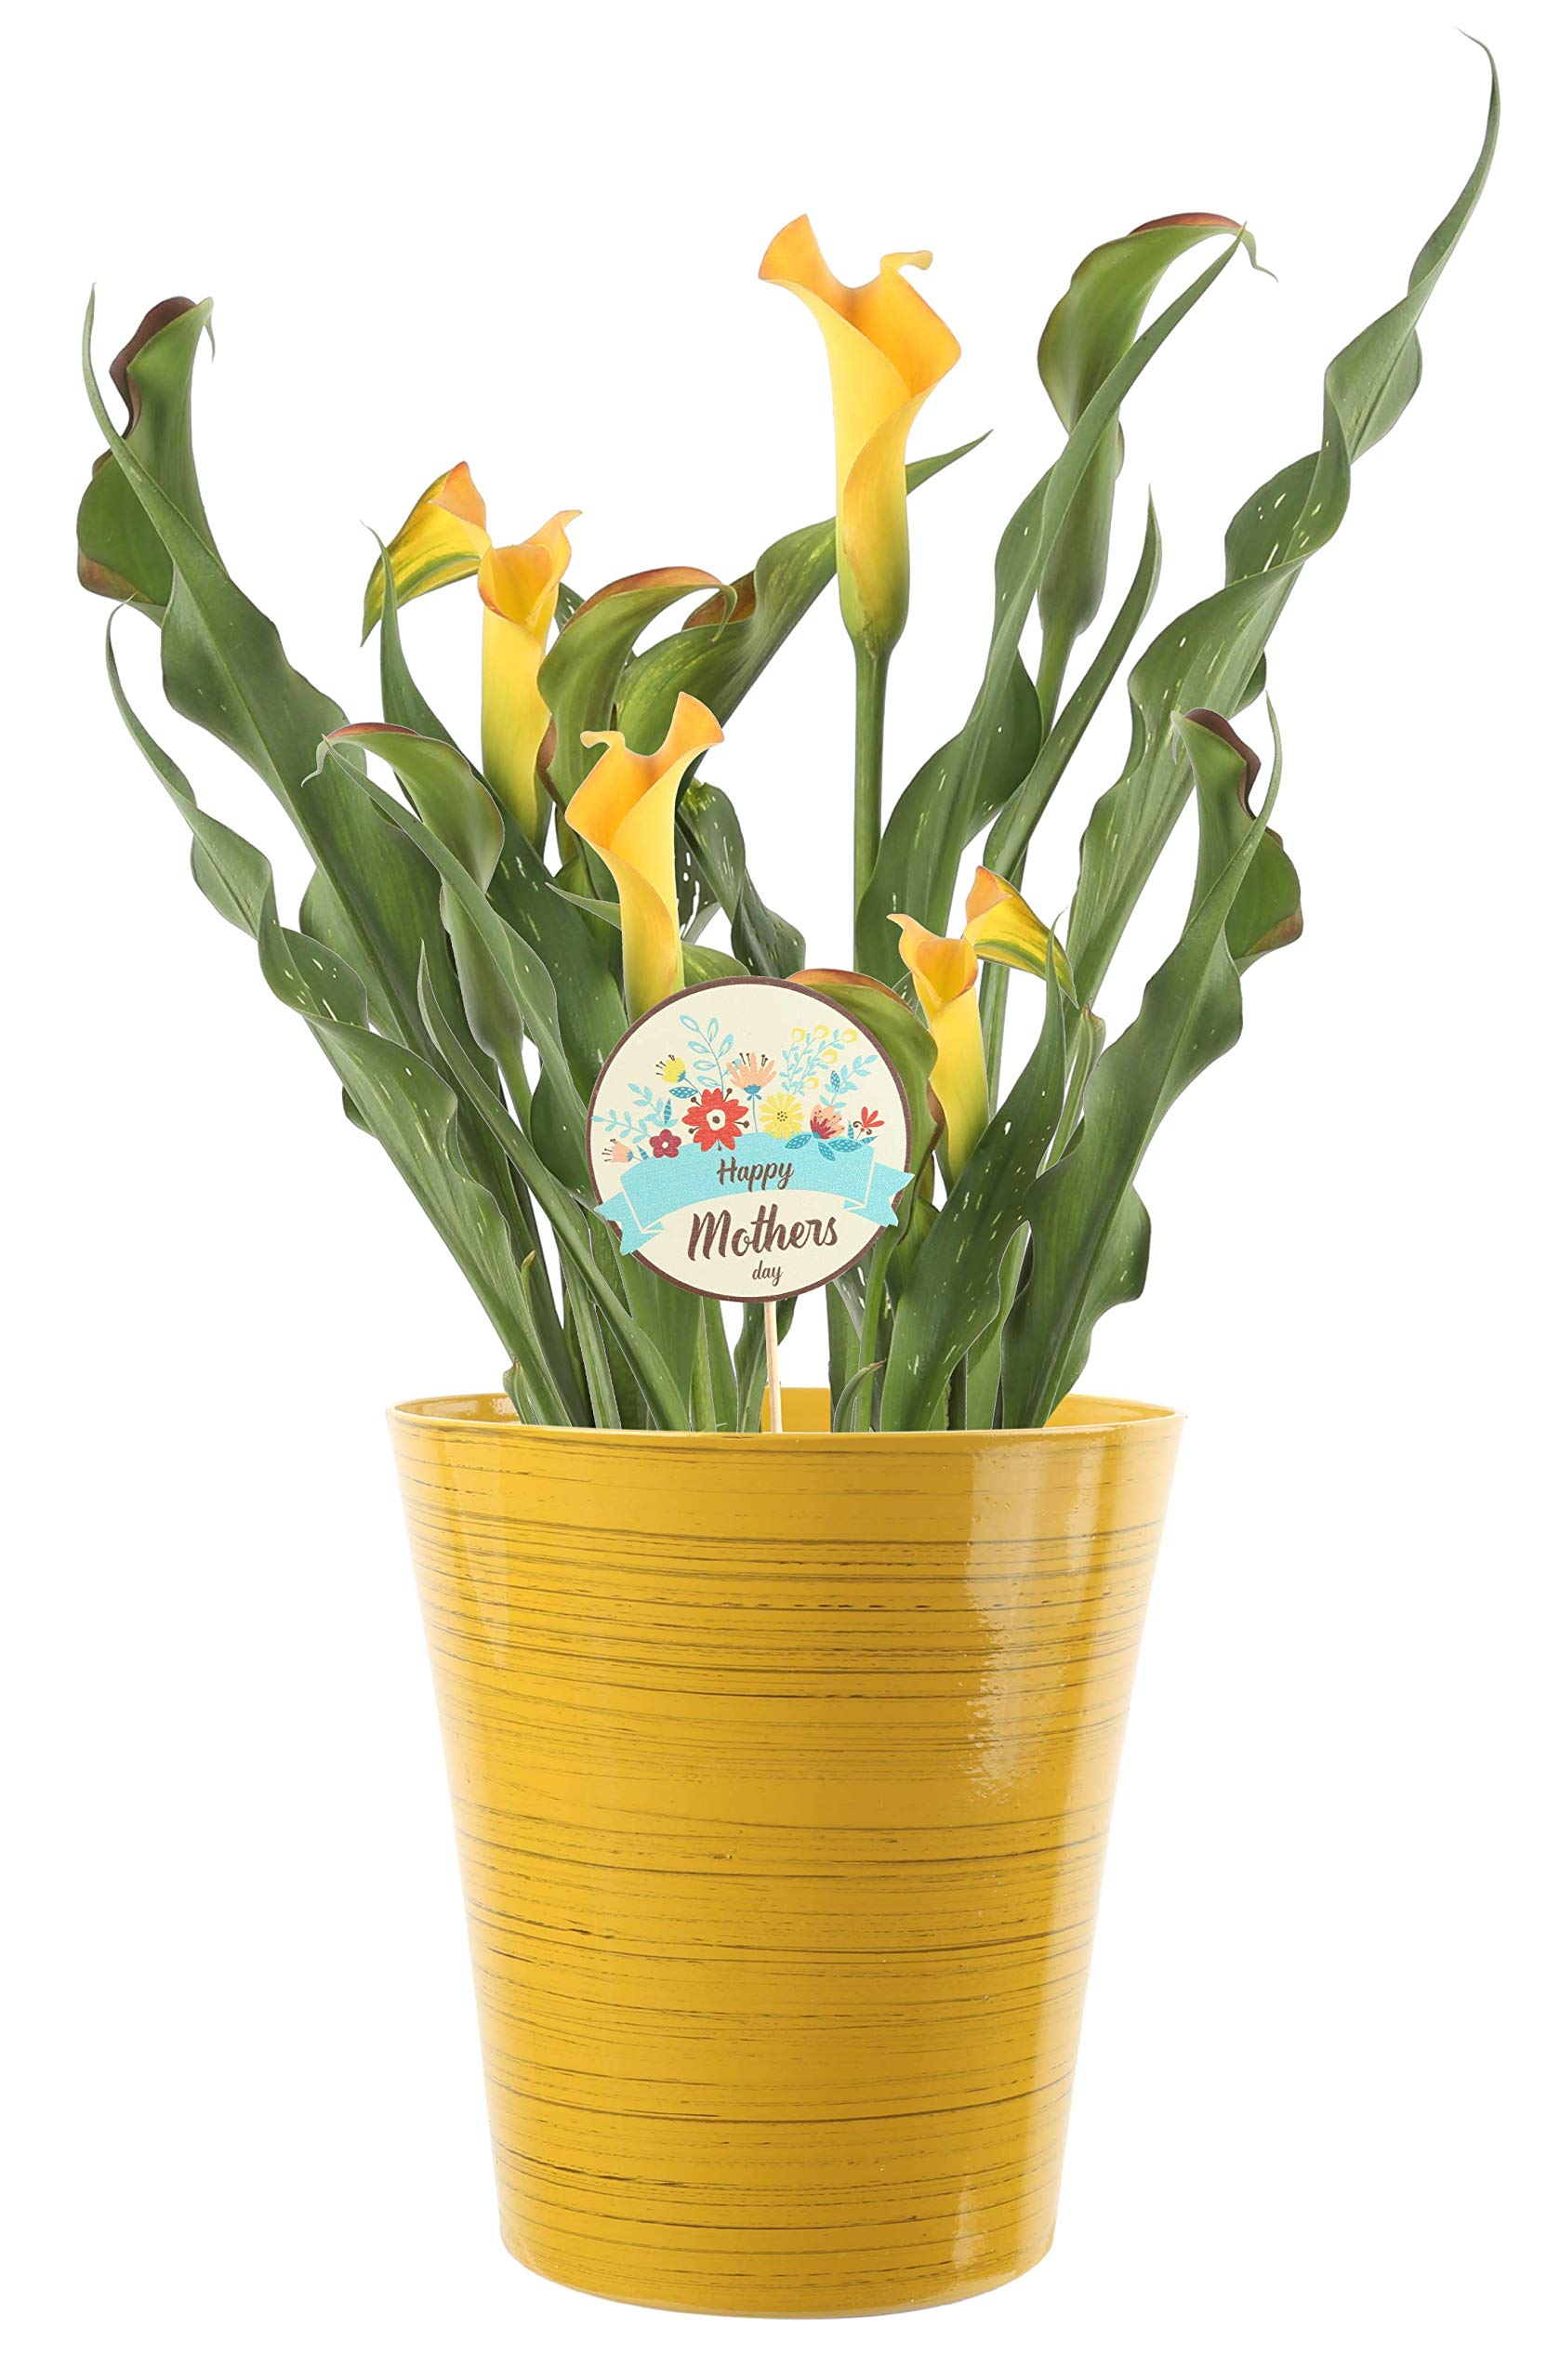 Costa Farms Calla Lily Live Outdoor Plant 2.5 QT Decor Pot, Grower's Choice Variety, Excellent Gift by Costa Farms (Image #1)